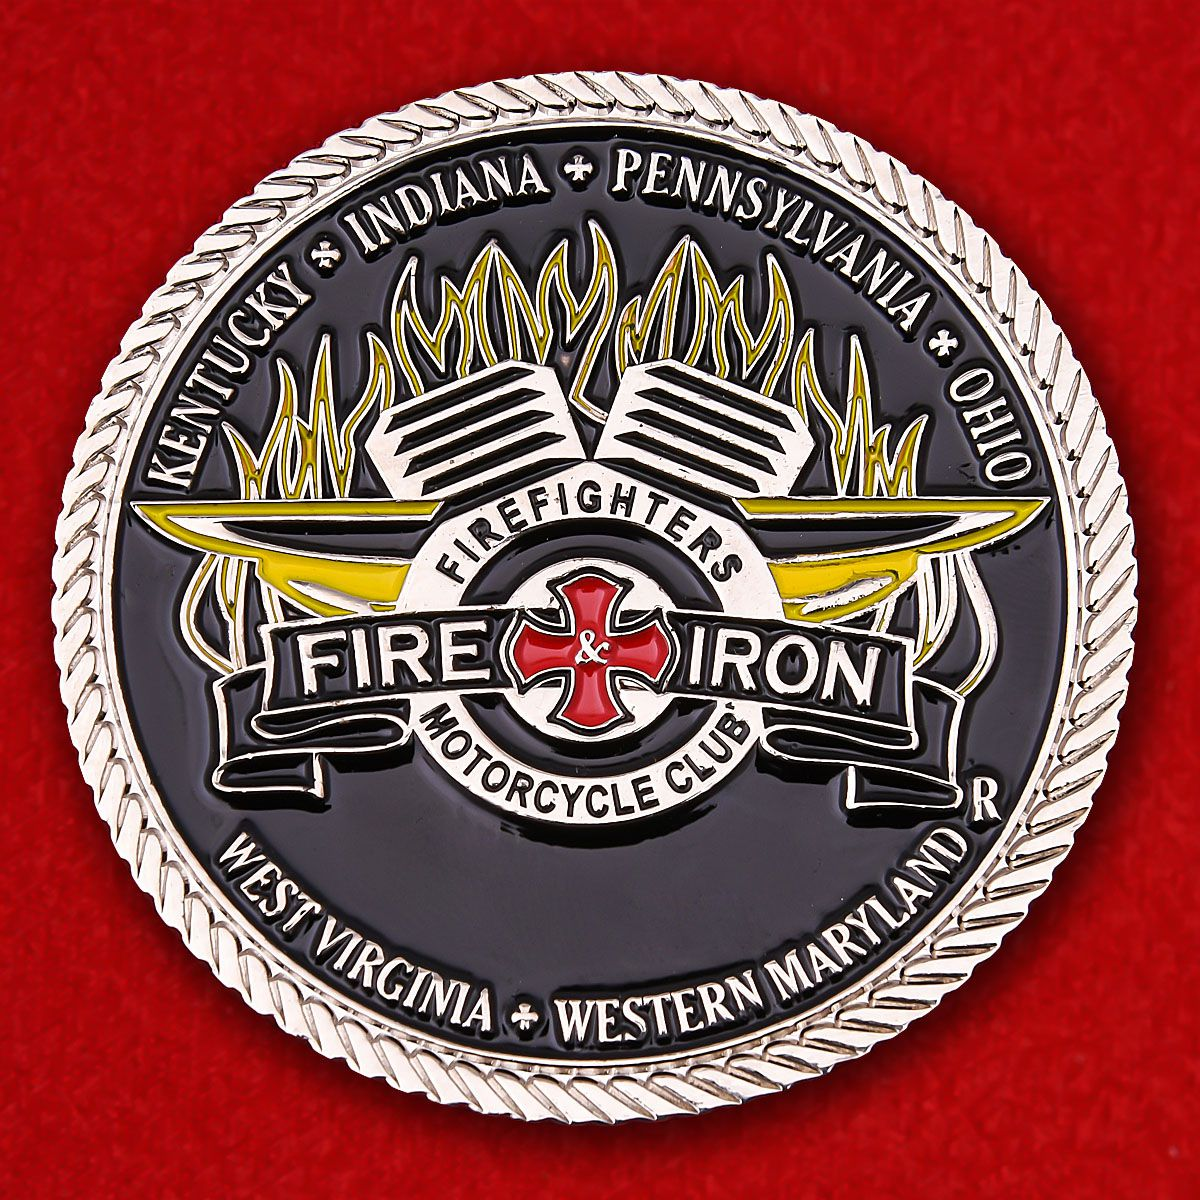 Fire & Iron Firefighter